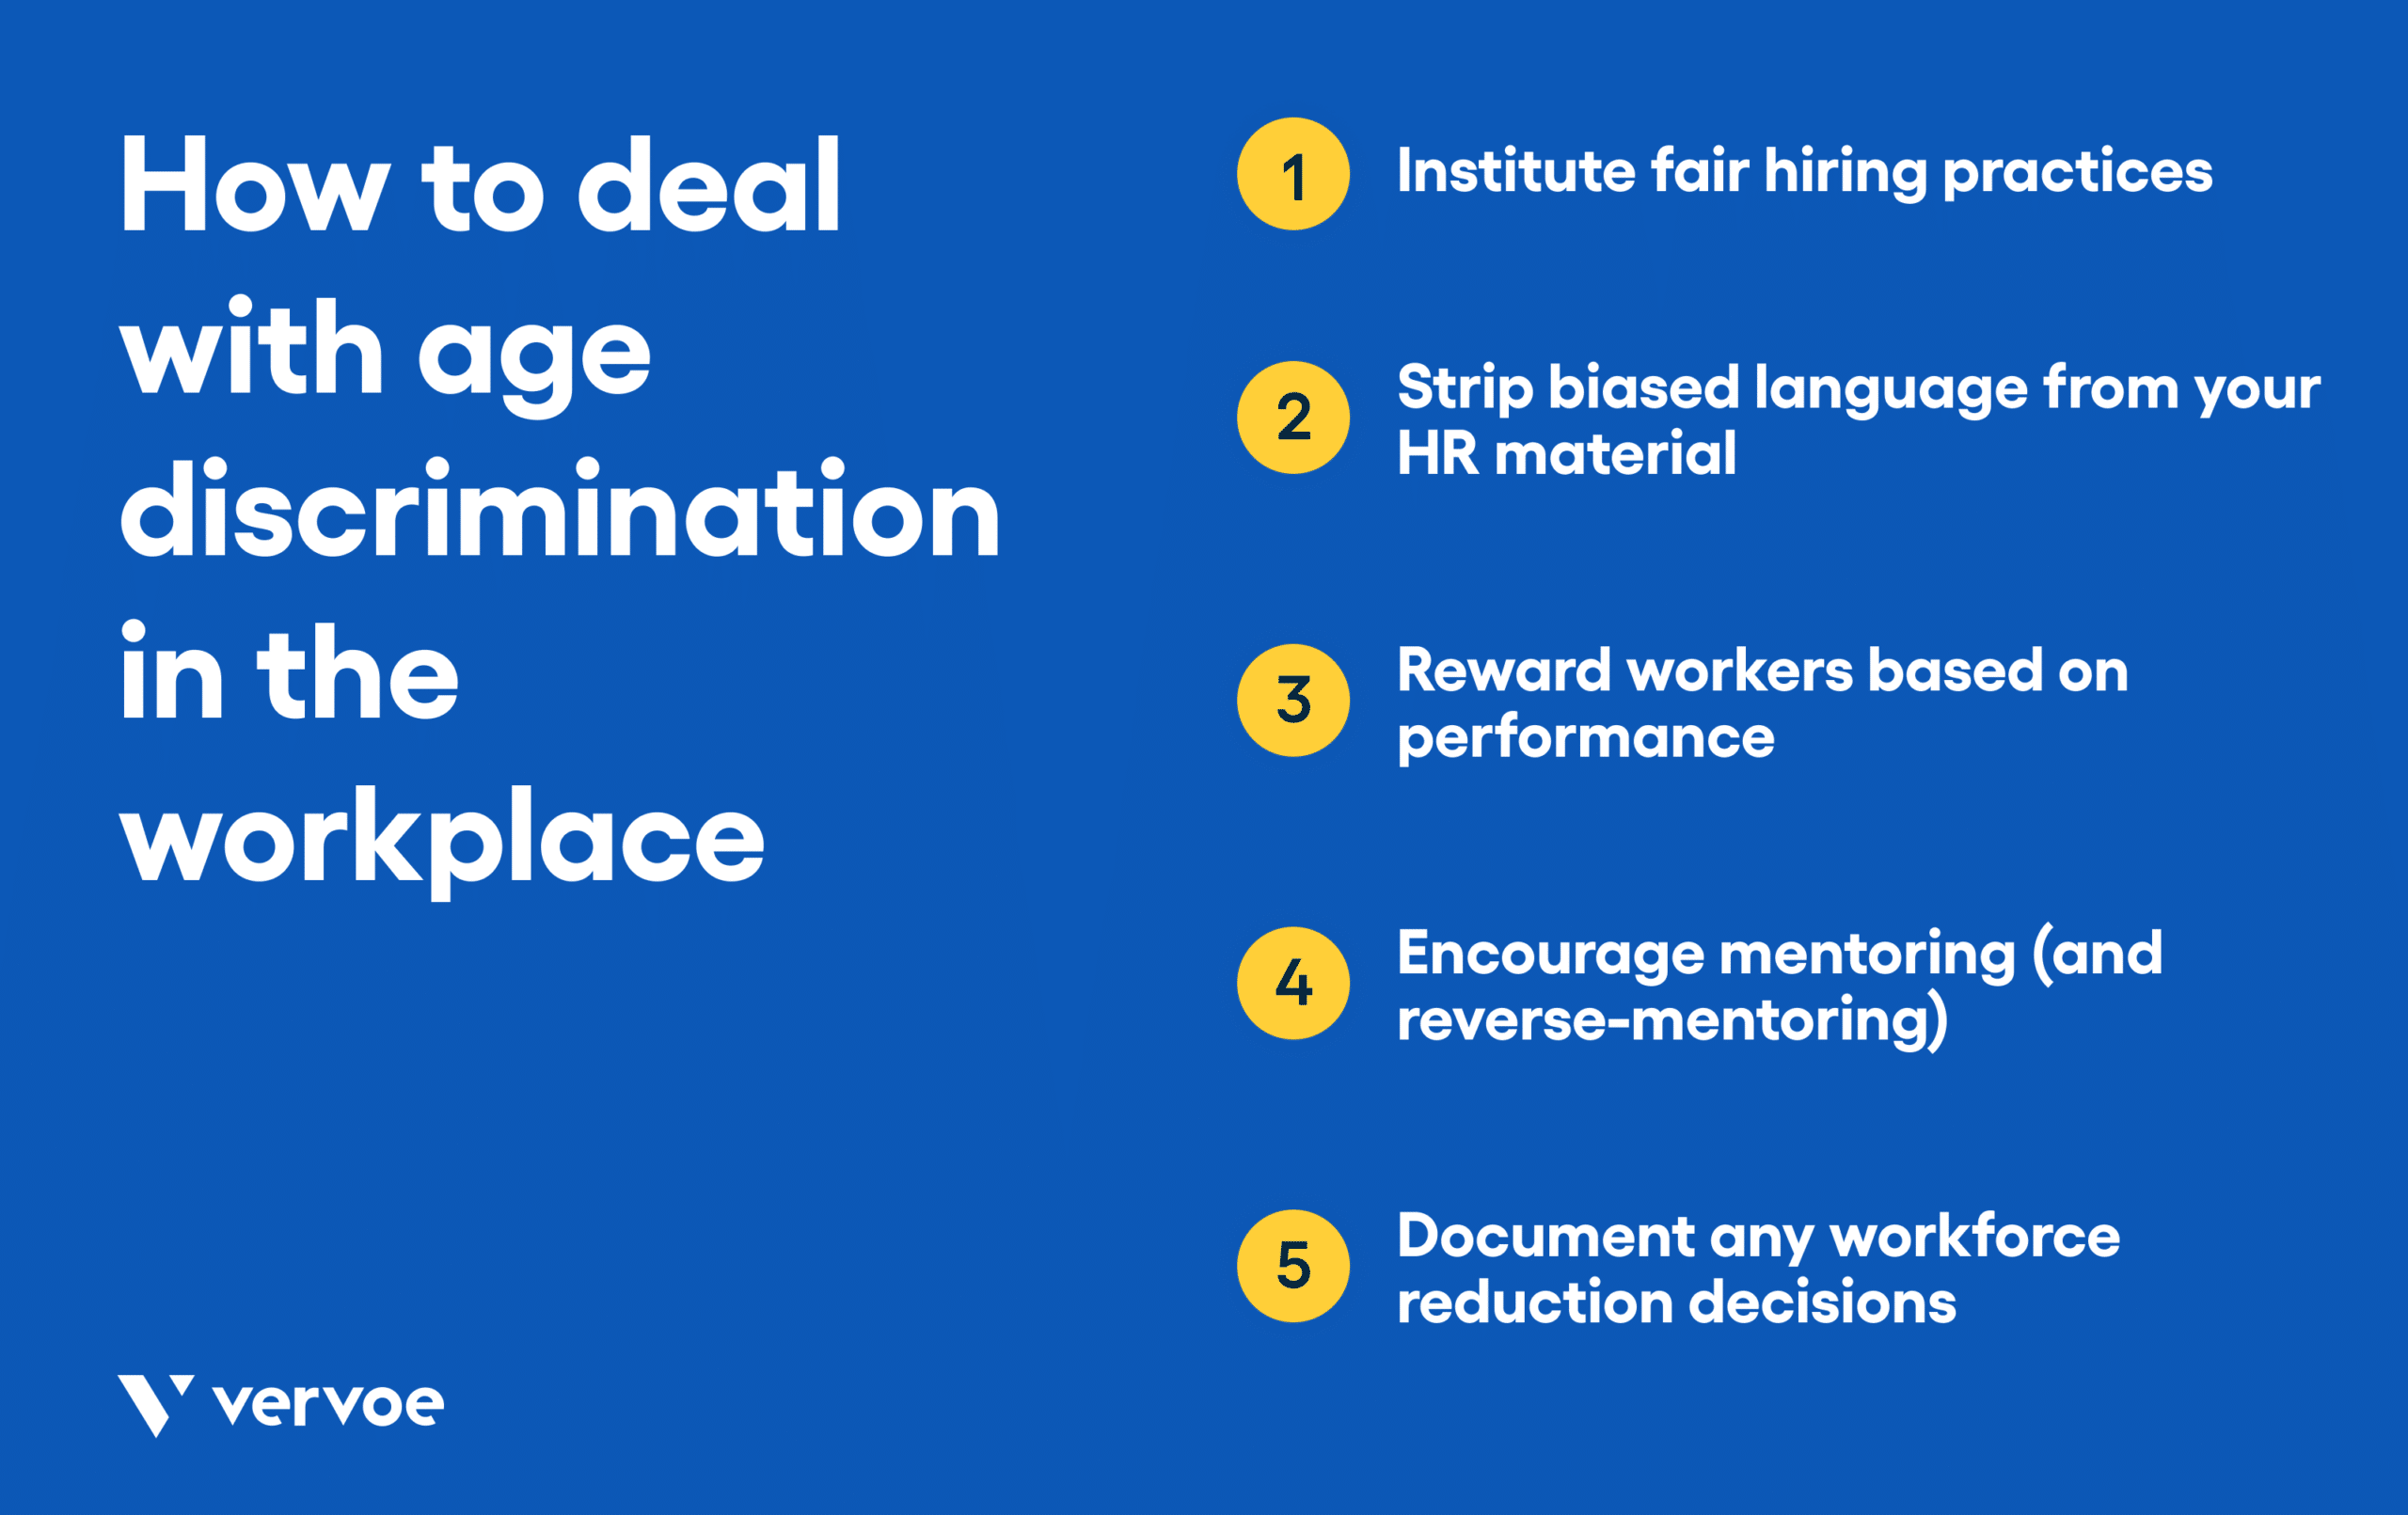 List of tips for dealing with age discrimination in the workplace